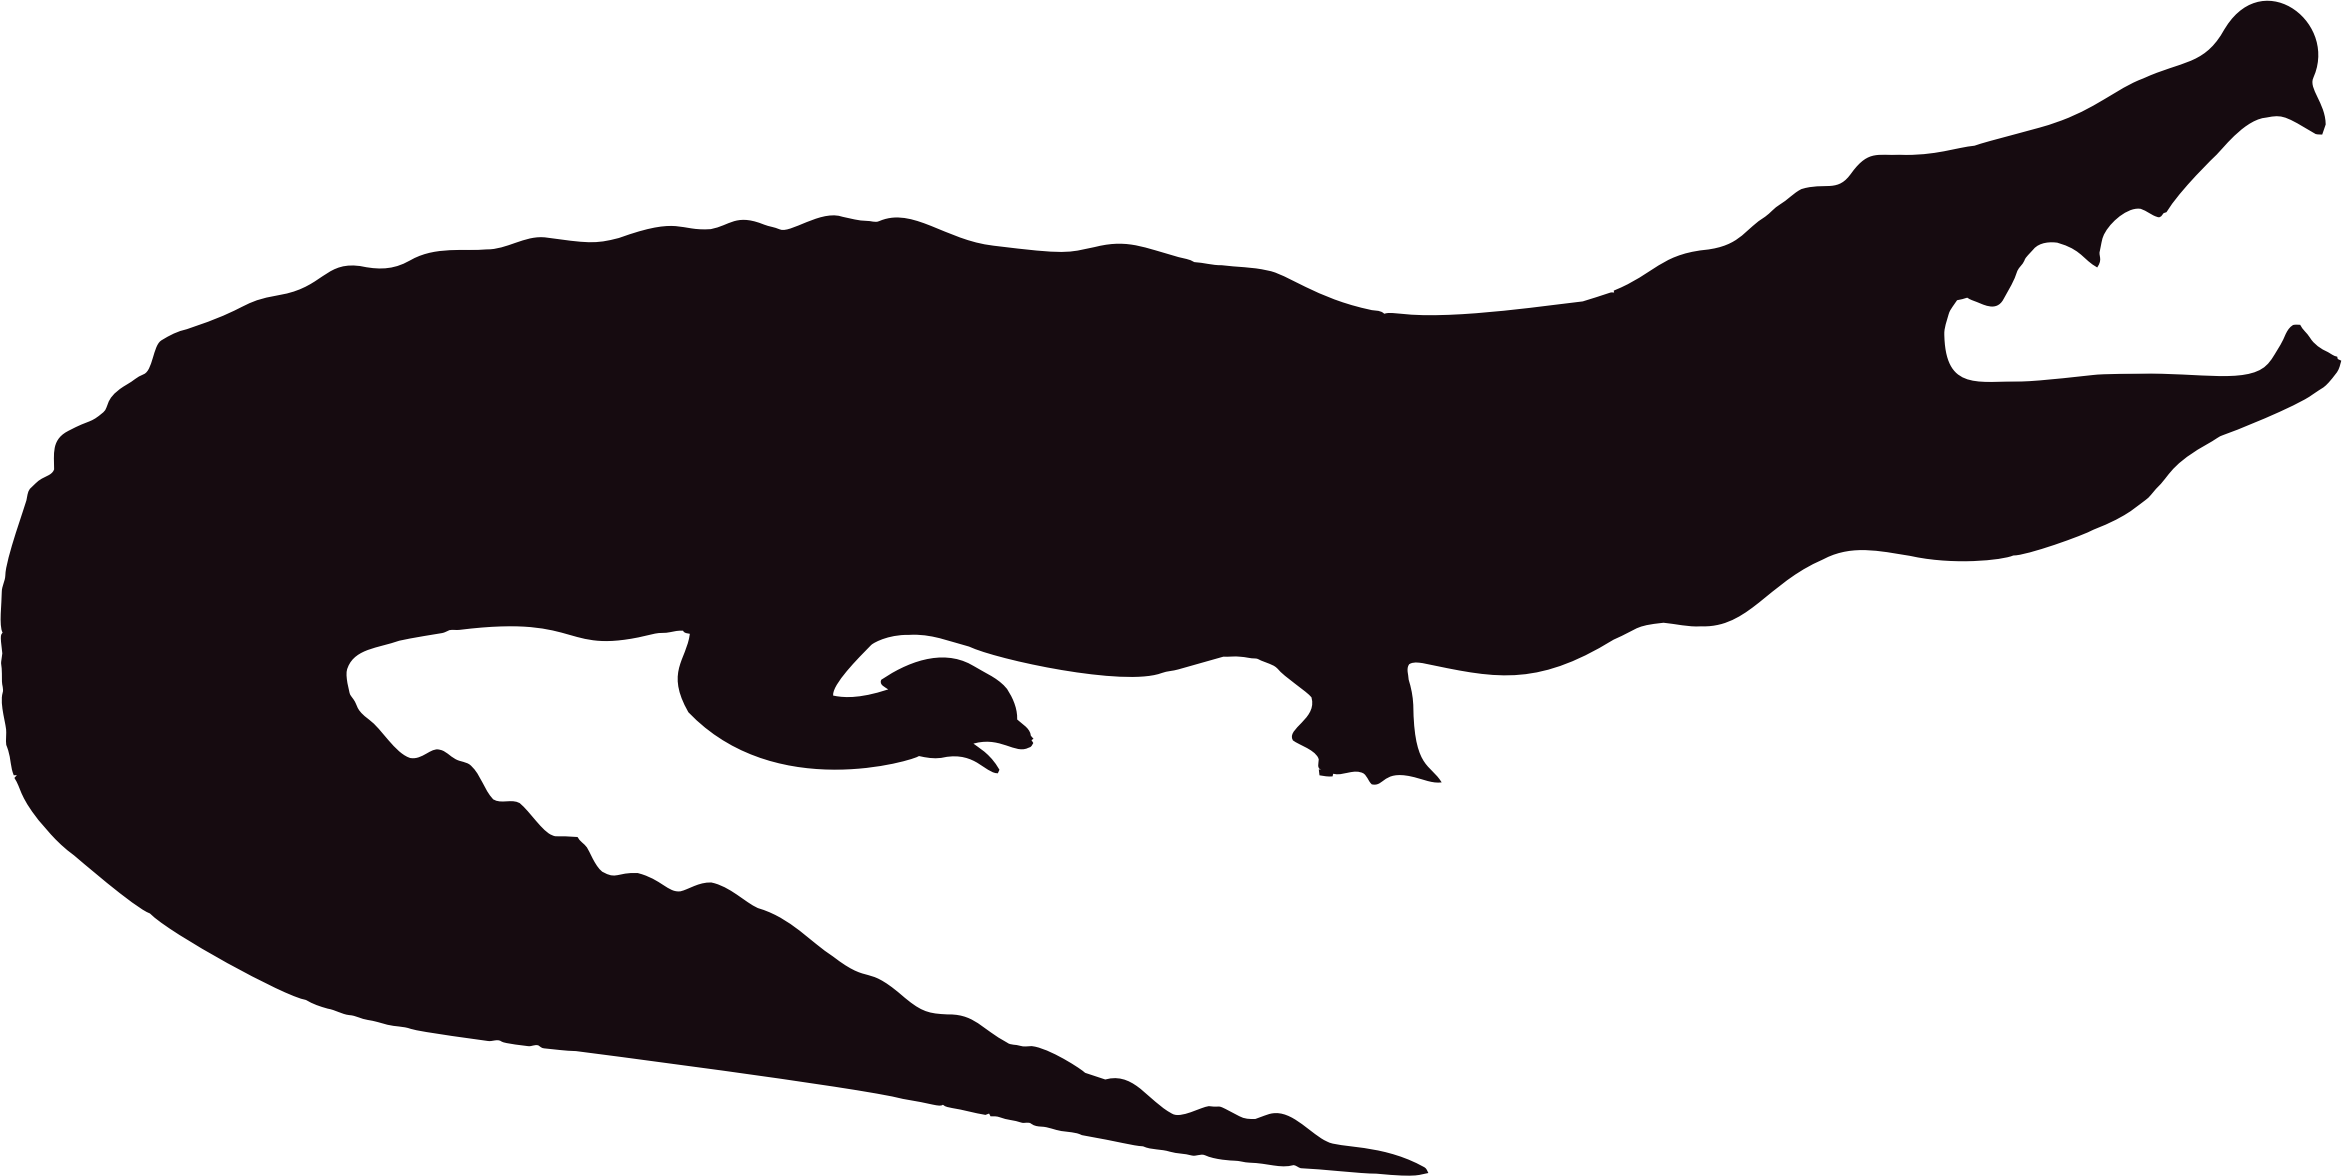 Alligator silhouette png. Icons free and downloads